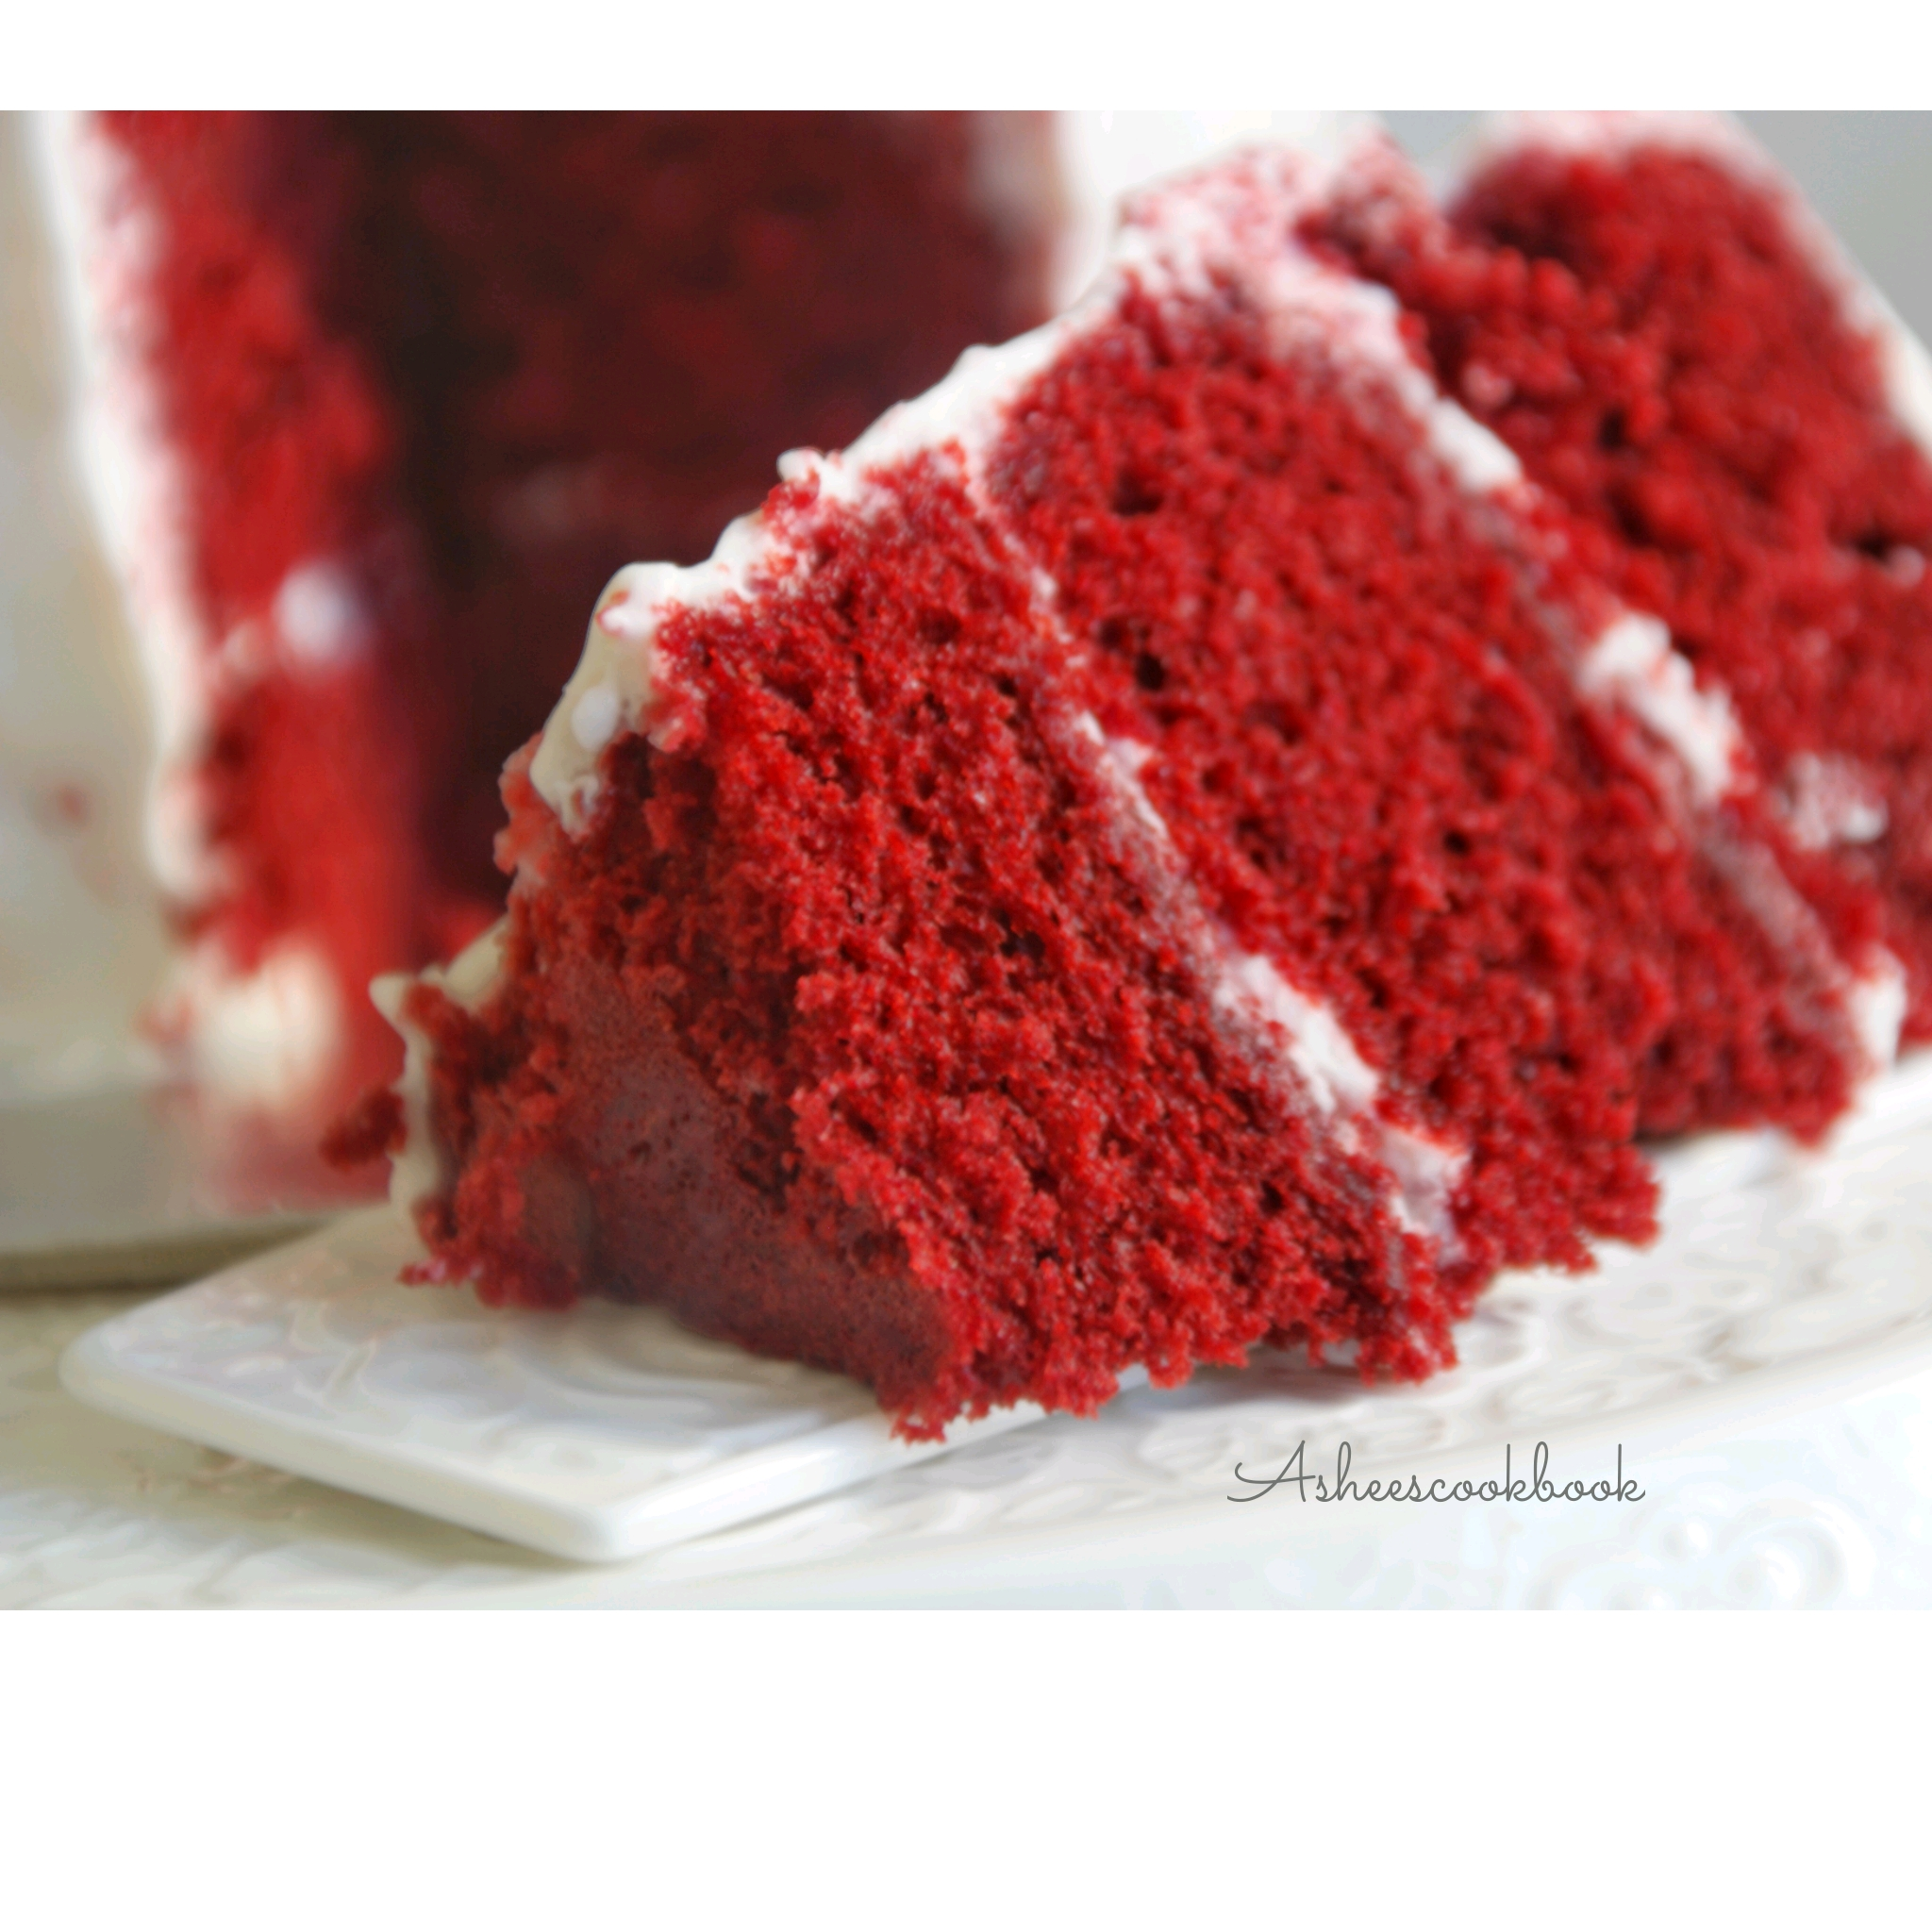 What Frosting Goes With Red Velvet Cake